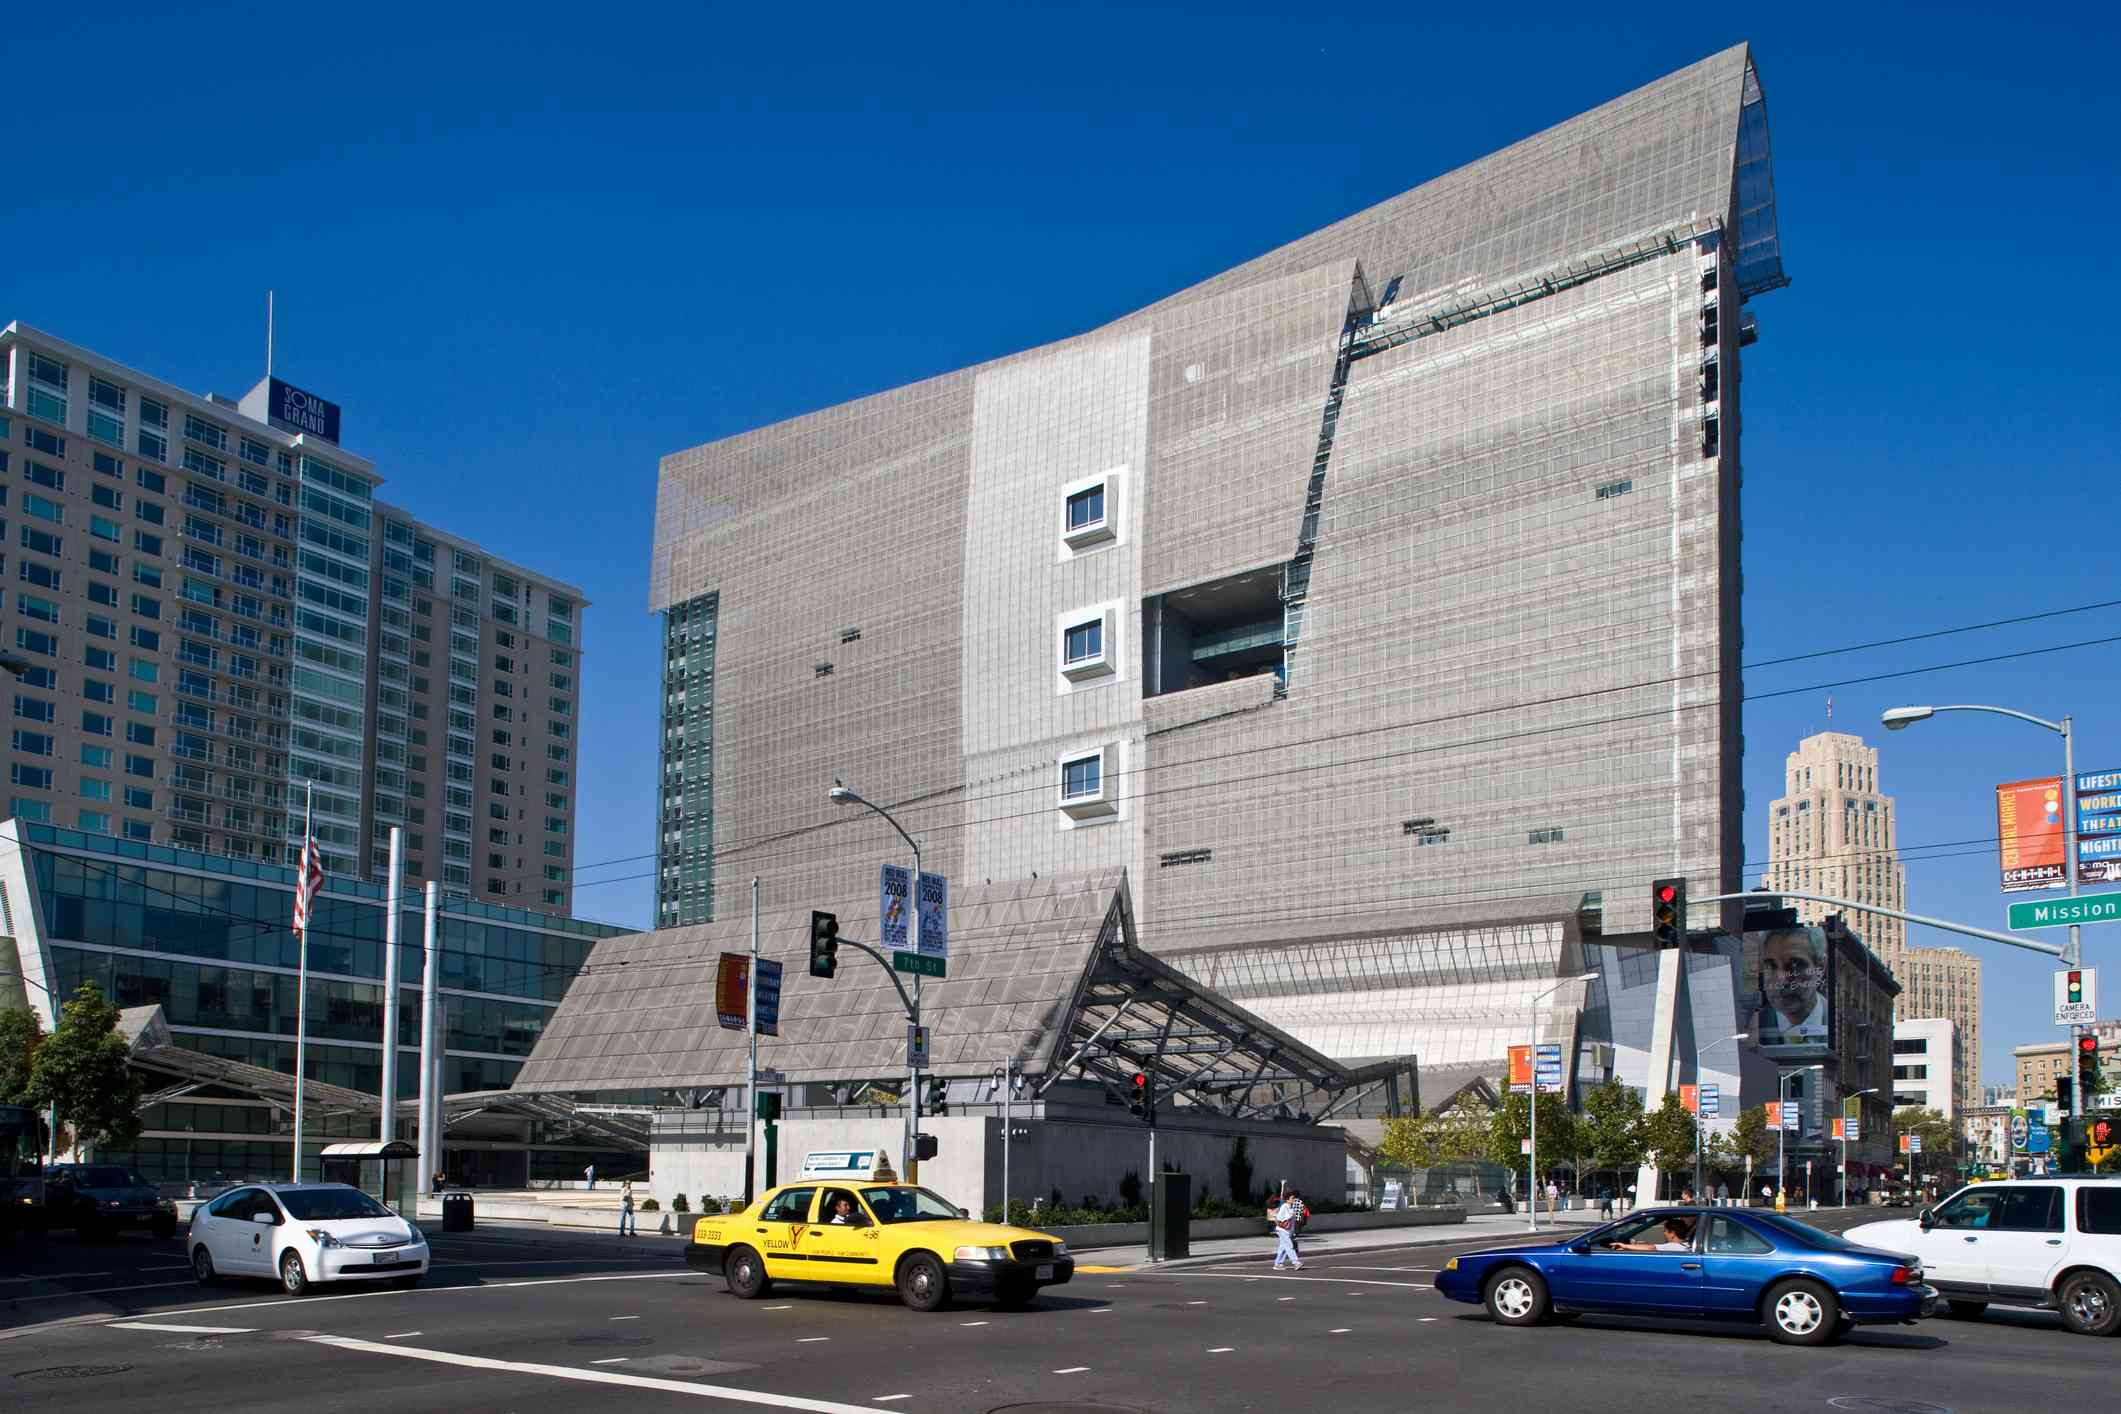 The San Francisco Federal Building, an eighteen story concrete and metal